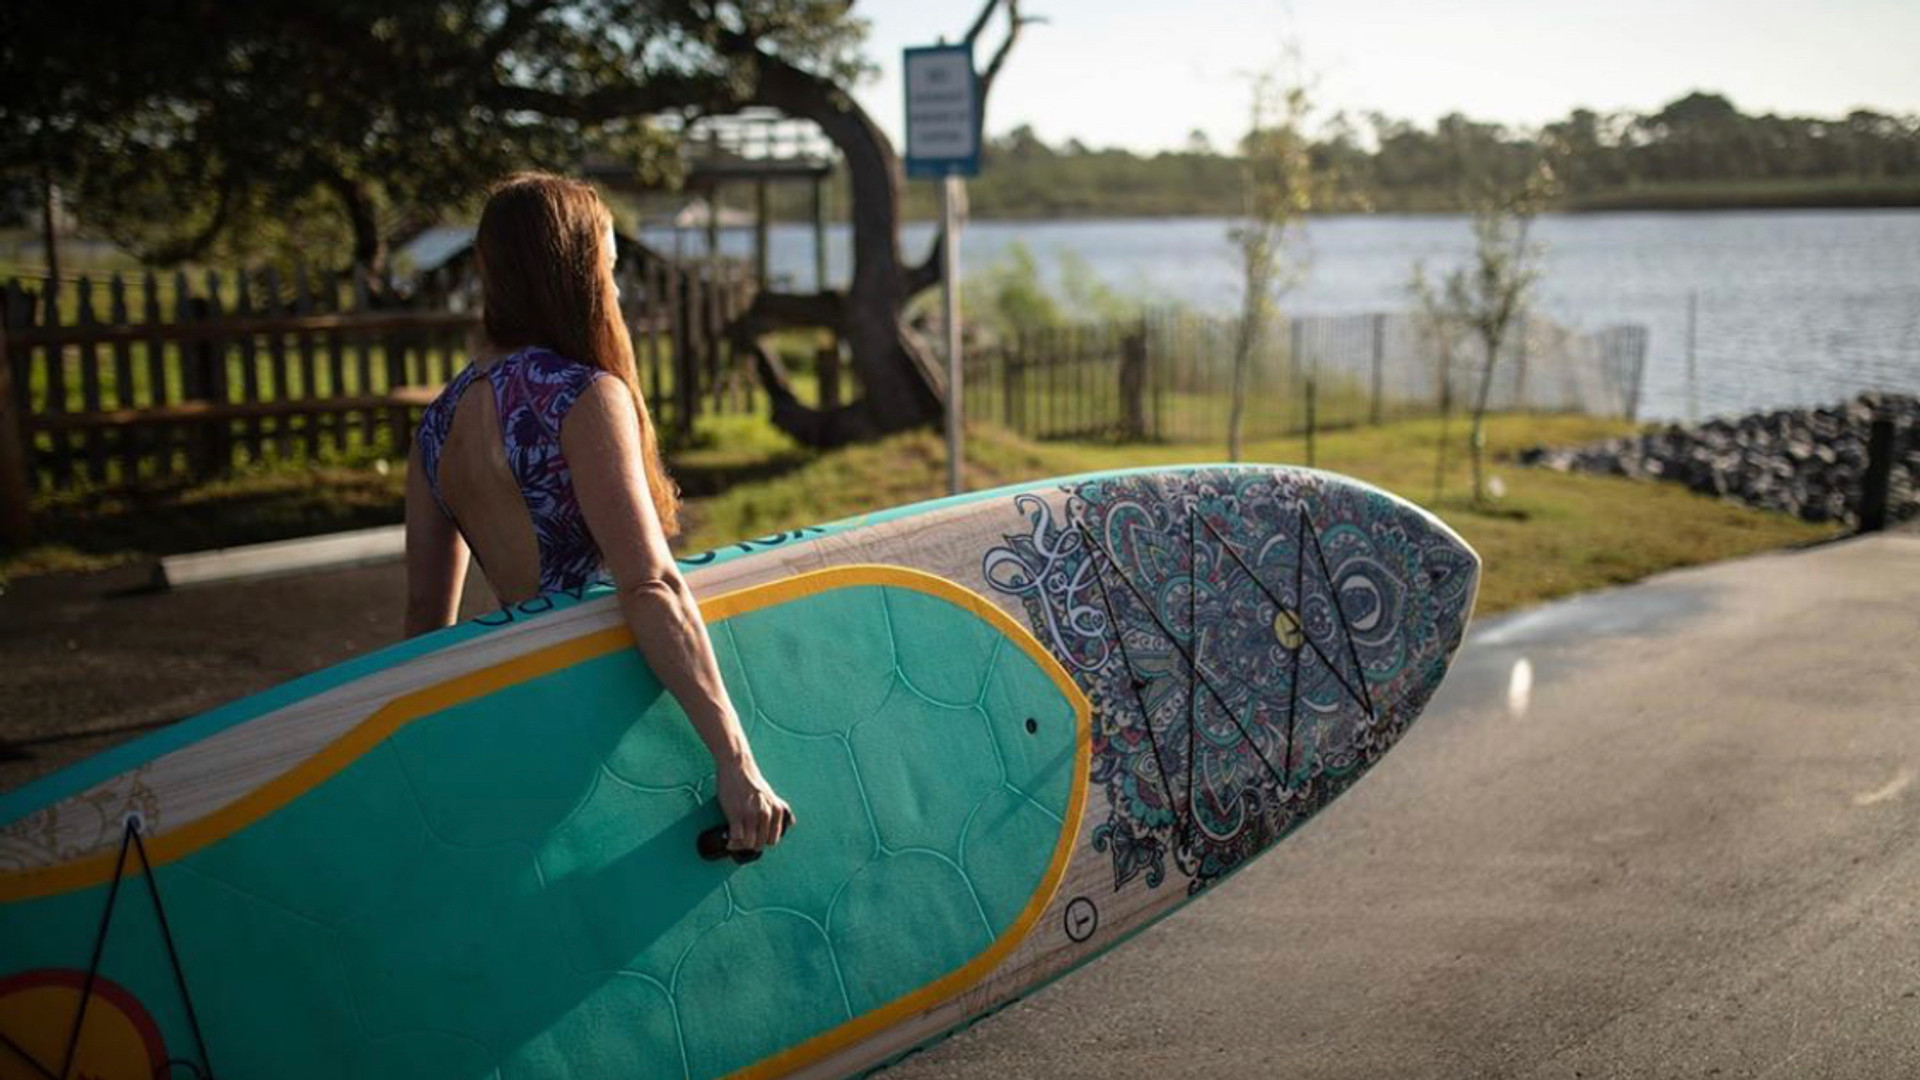 YOLO Board: The Therapeutic Side of SUP